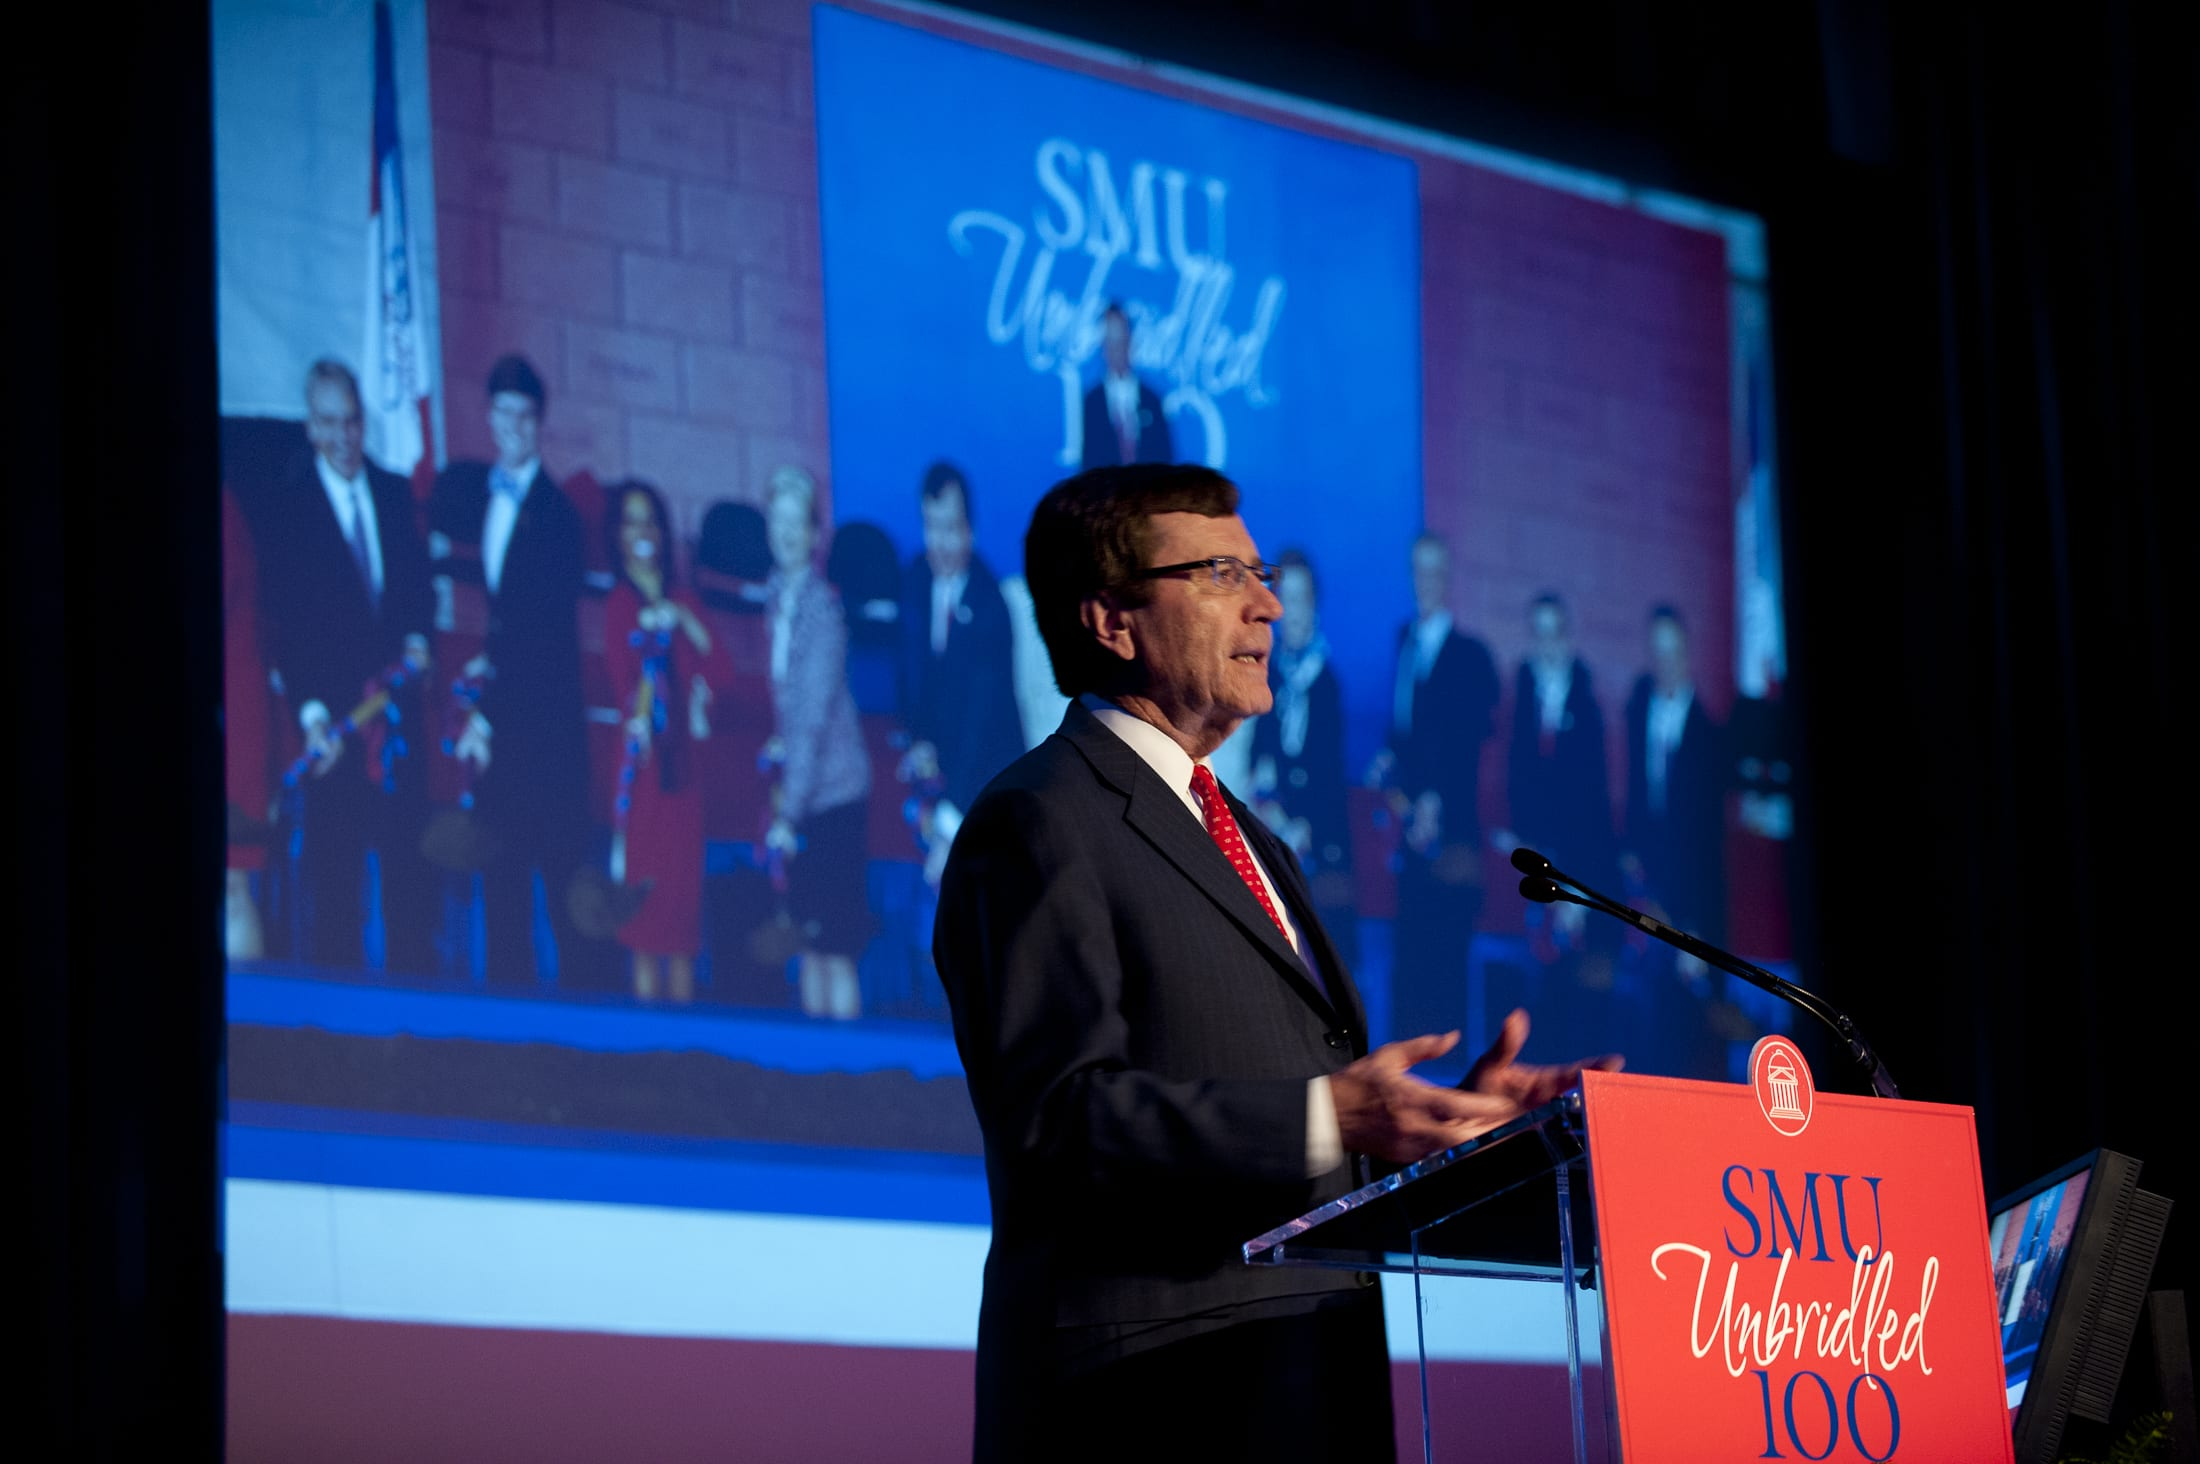 R. Gerald Turner, President's Briefing, SMU Founders' Day 2012